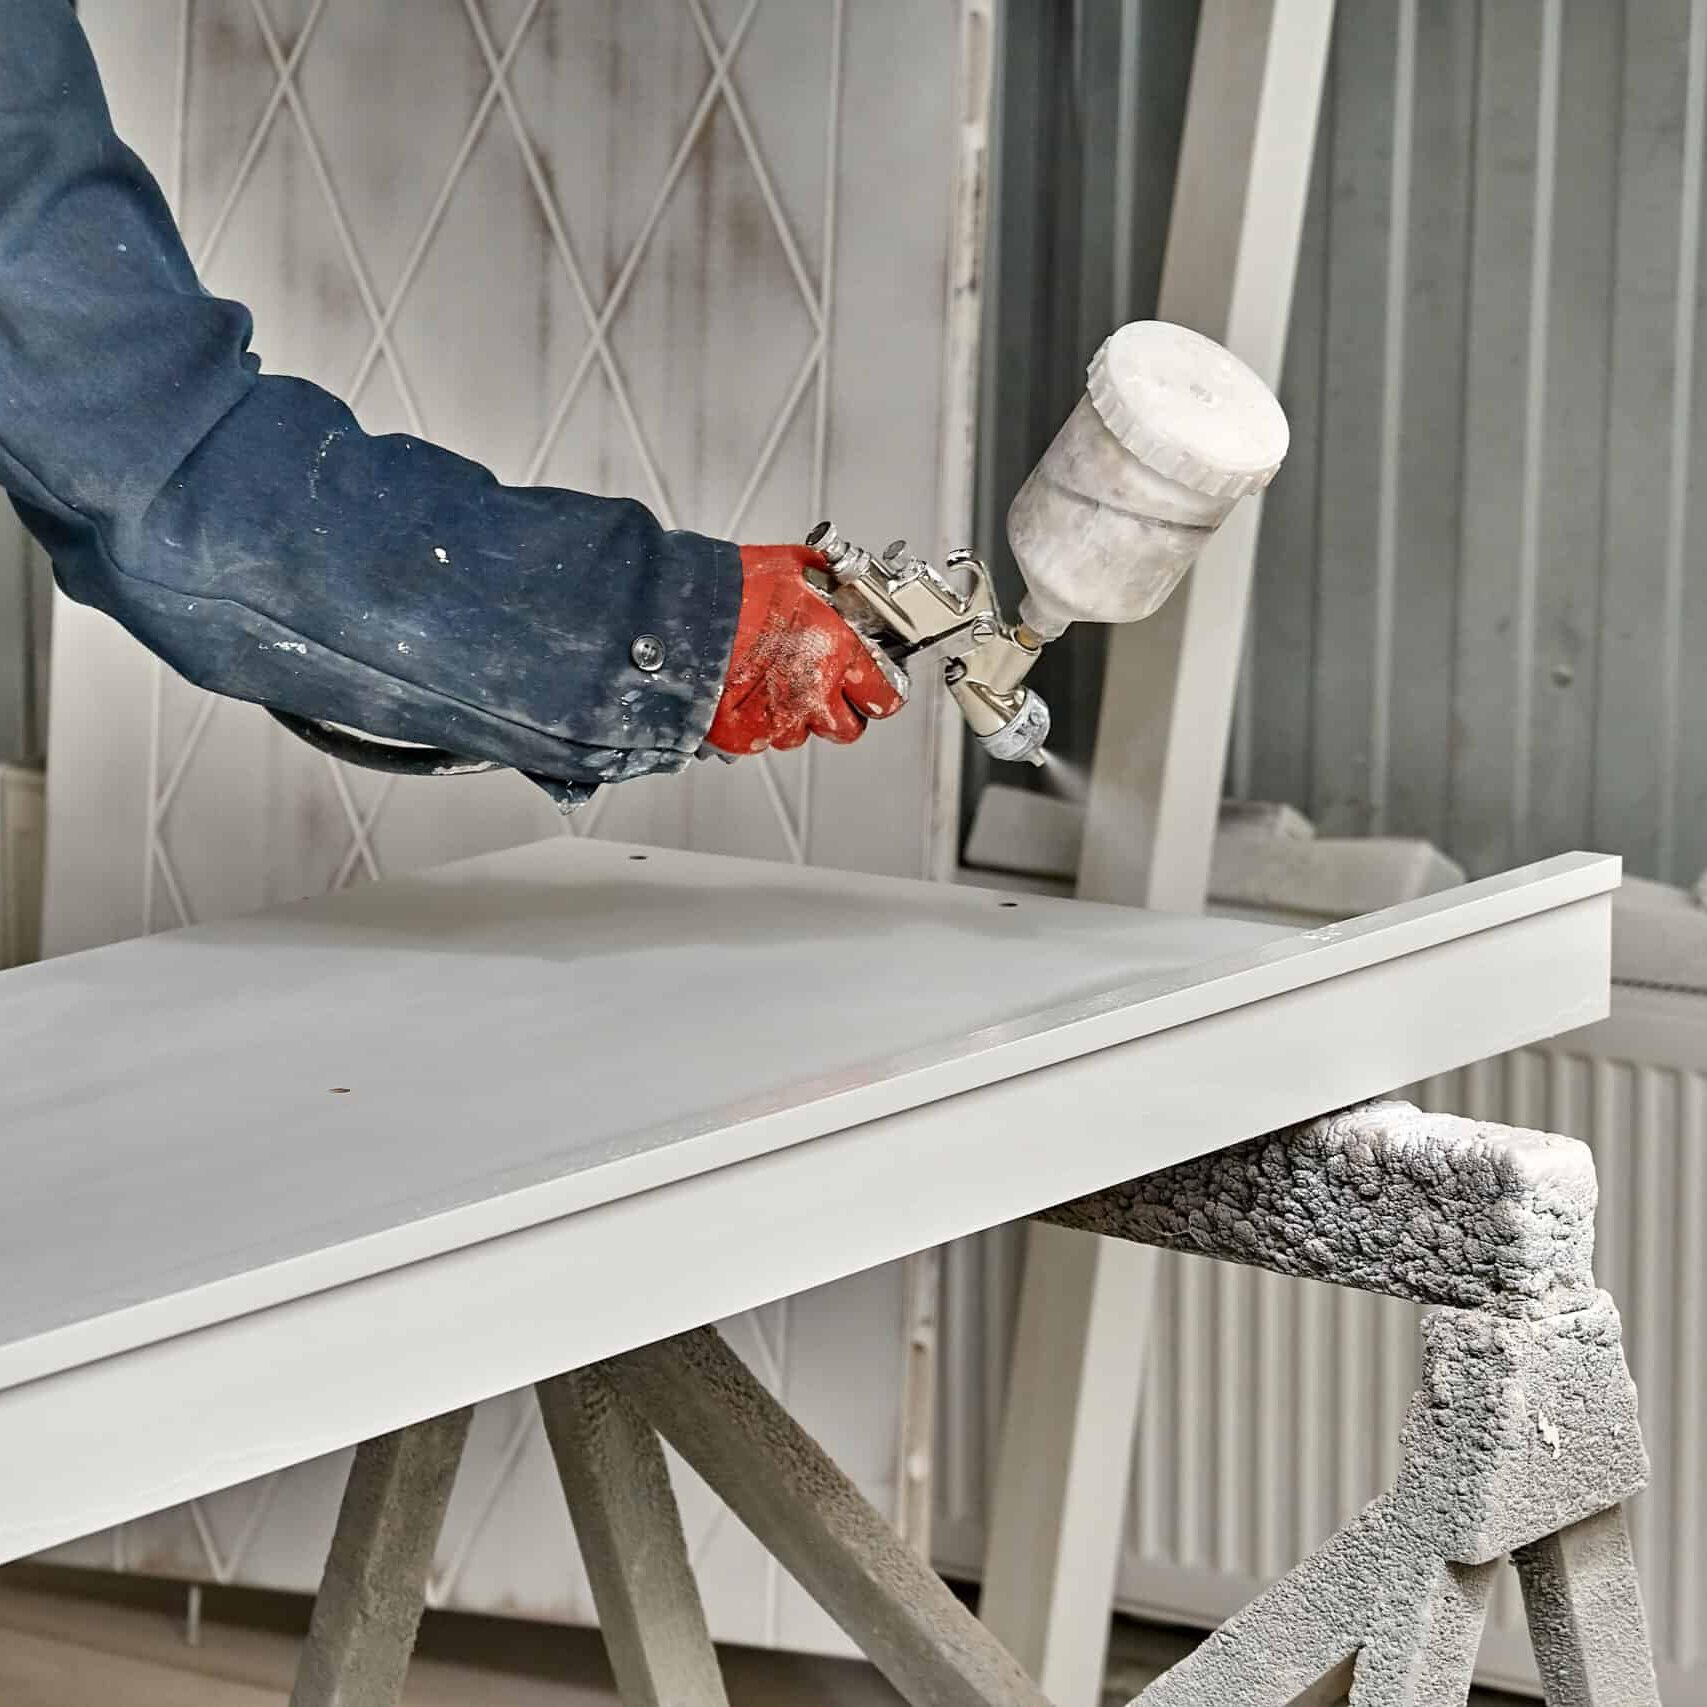 Painting cabinets with spray gun. Painting chamber, spray gun. Wooden furniture manufacturing process